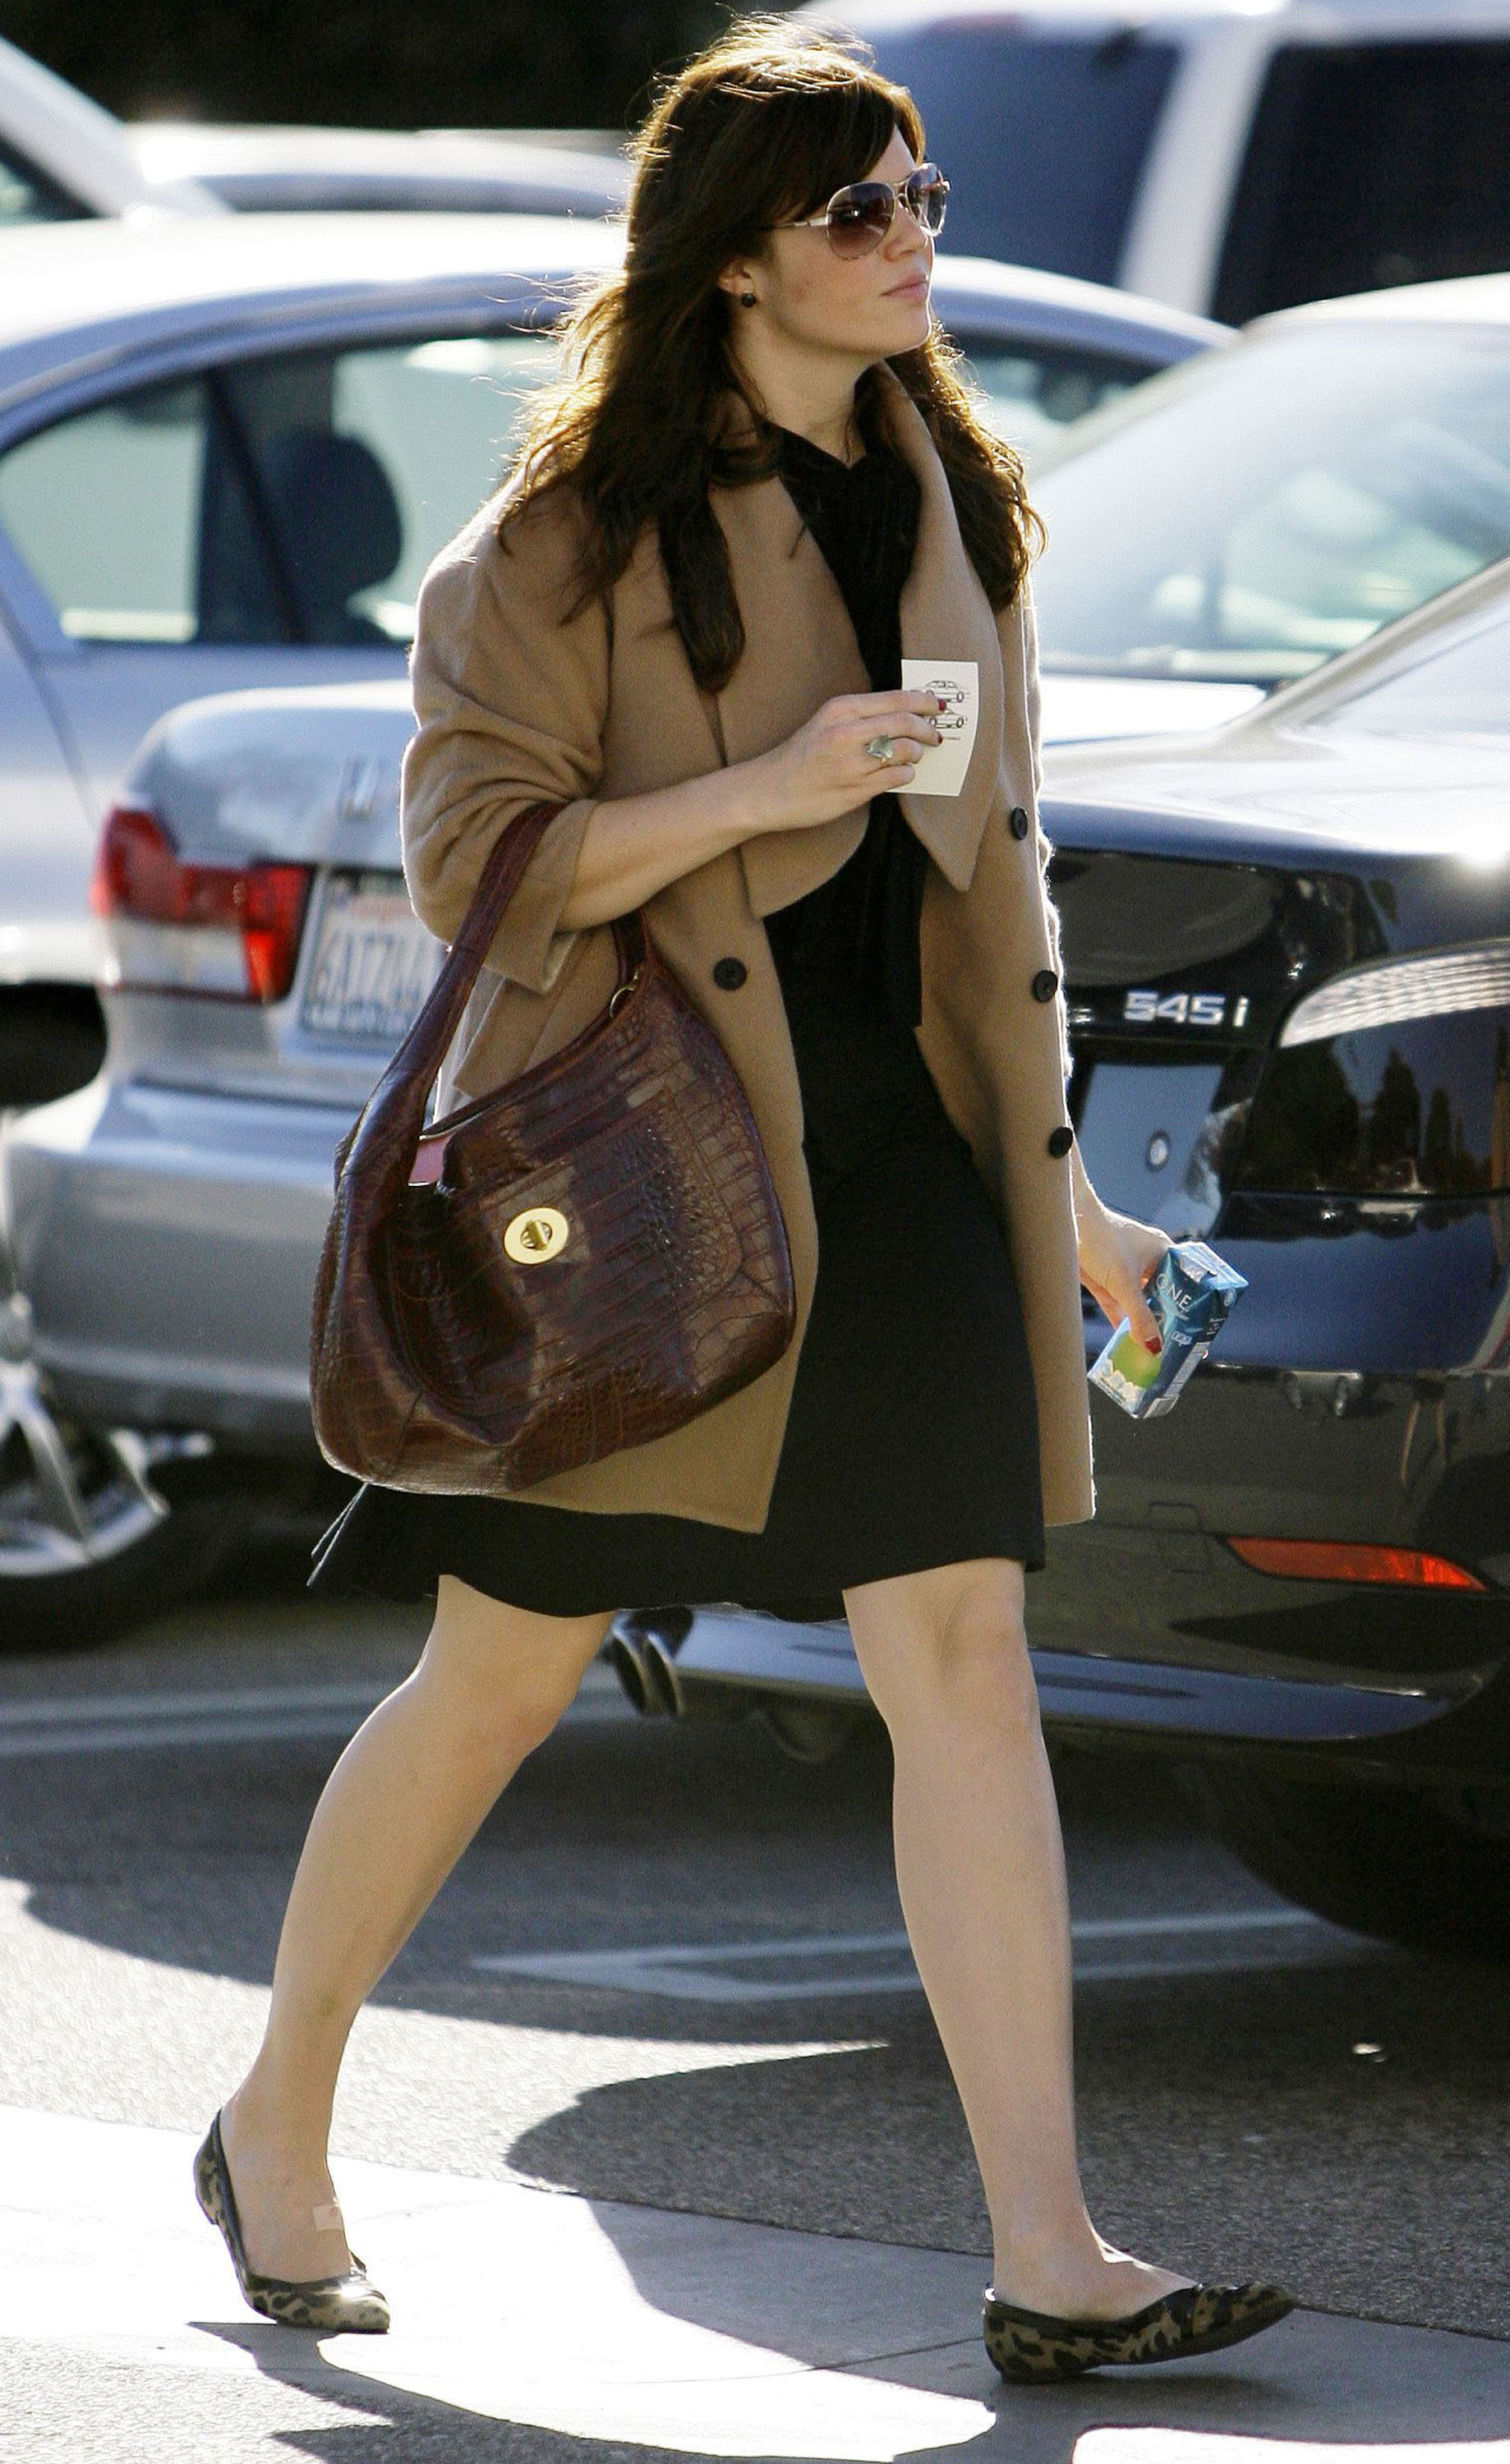 68057_celeb-city.eu_Mandy_Moore_out_and_about_in_West_Hollywood_10.12.2007_26_122_1196lo.jpg